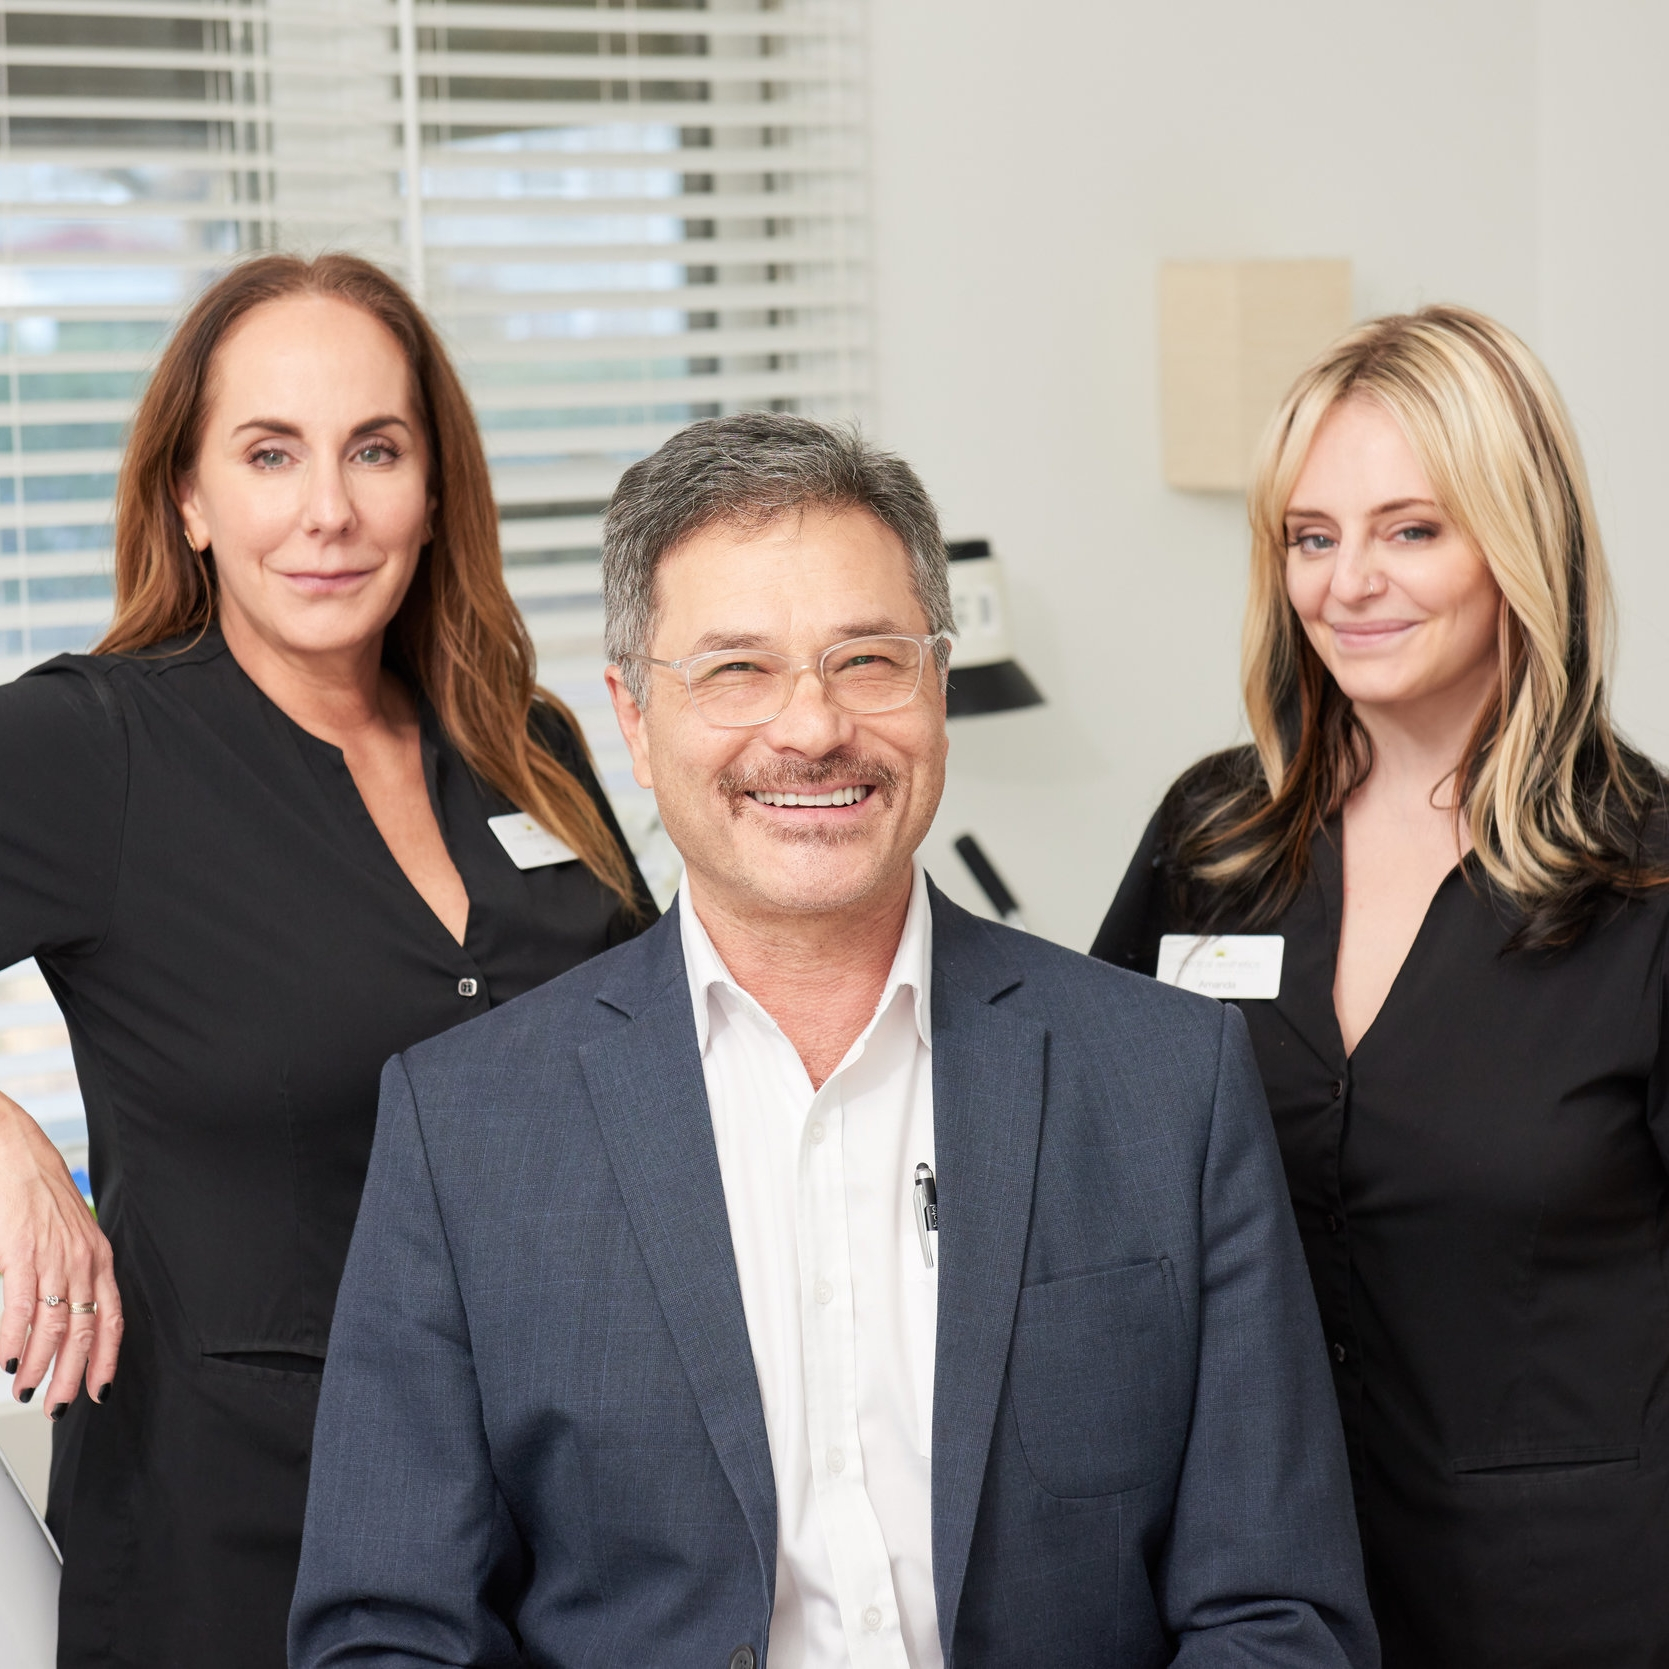 Cosmetic specialist  Dr. Dean Bloch  offers a wide range of high-quality, results-oriented cosmetic procedures.  We specialize in Laser Skin Resurfacing and Corrective Treatments to enhance facial and body rejuvenation:  Fraxel ,  Thermage ,  Botox ,  Microdermabrasion ,  Laser Hair Removal ,  Photofacials ,  Chemical Peels  and IPL.